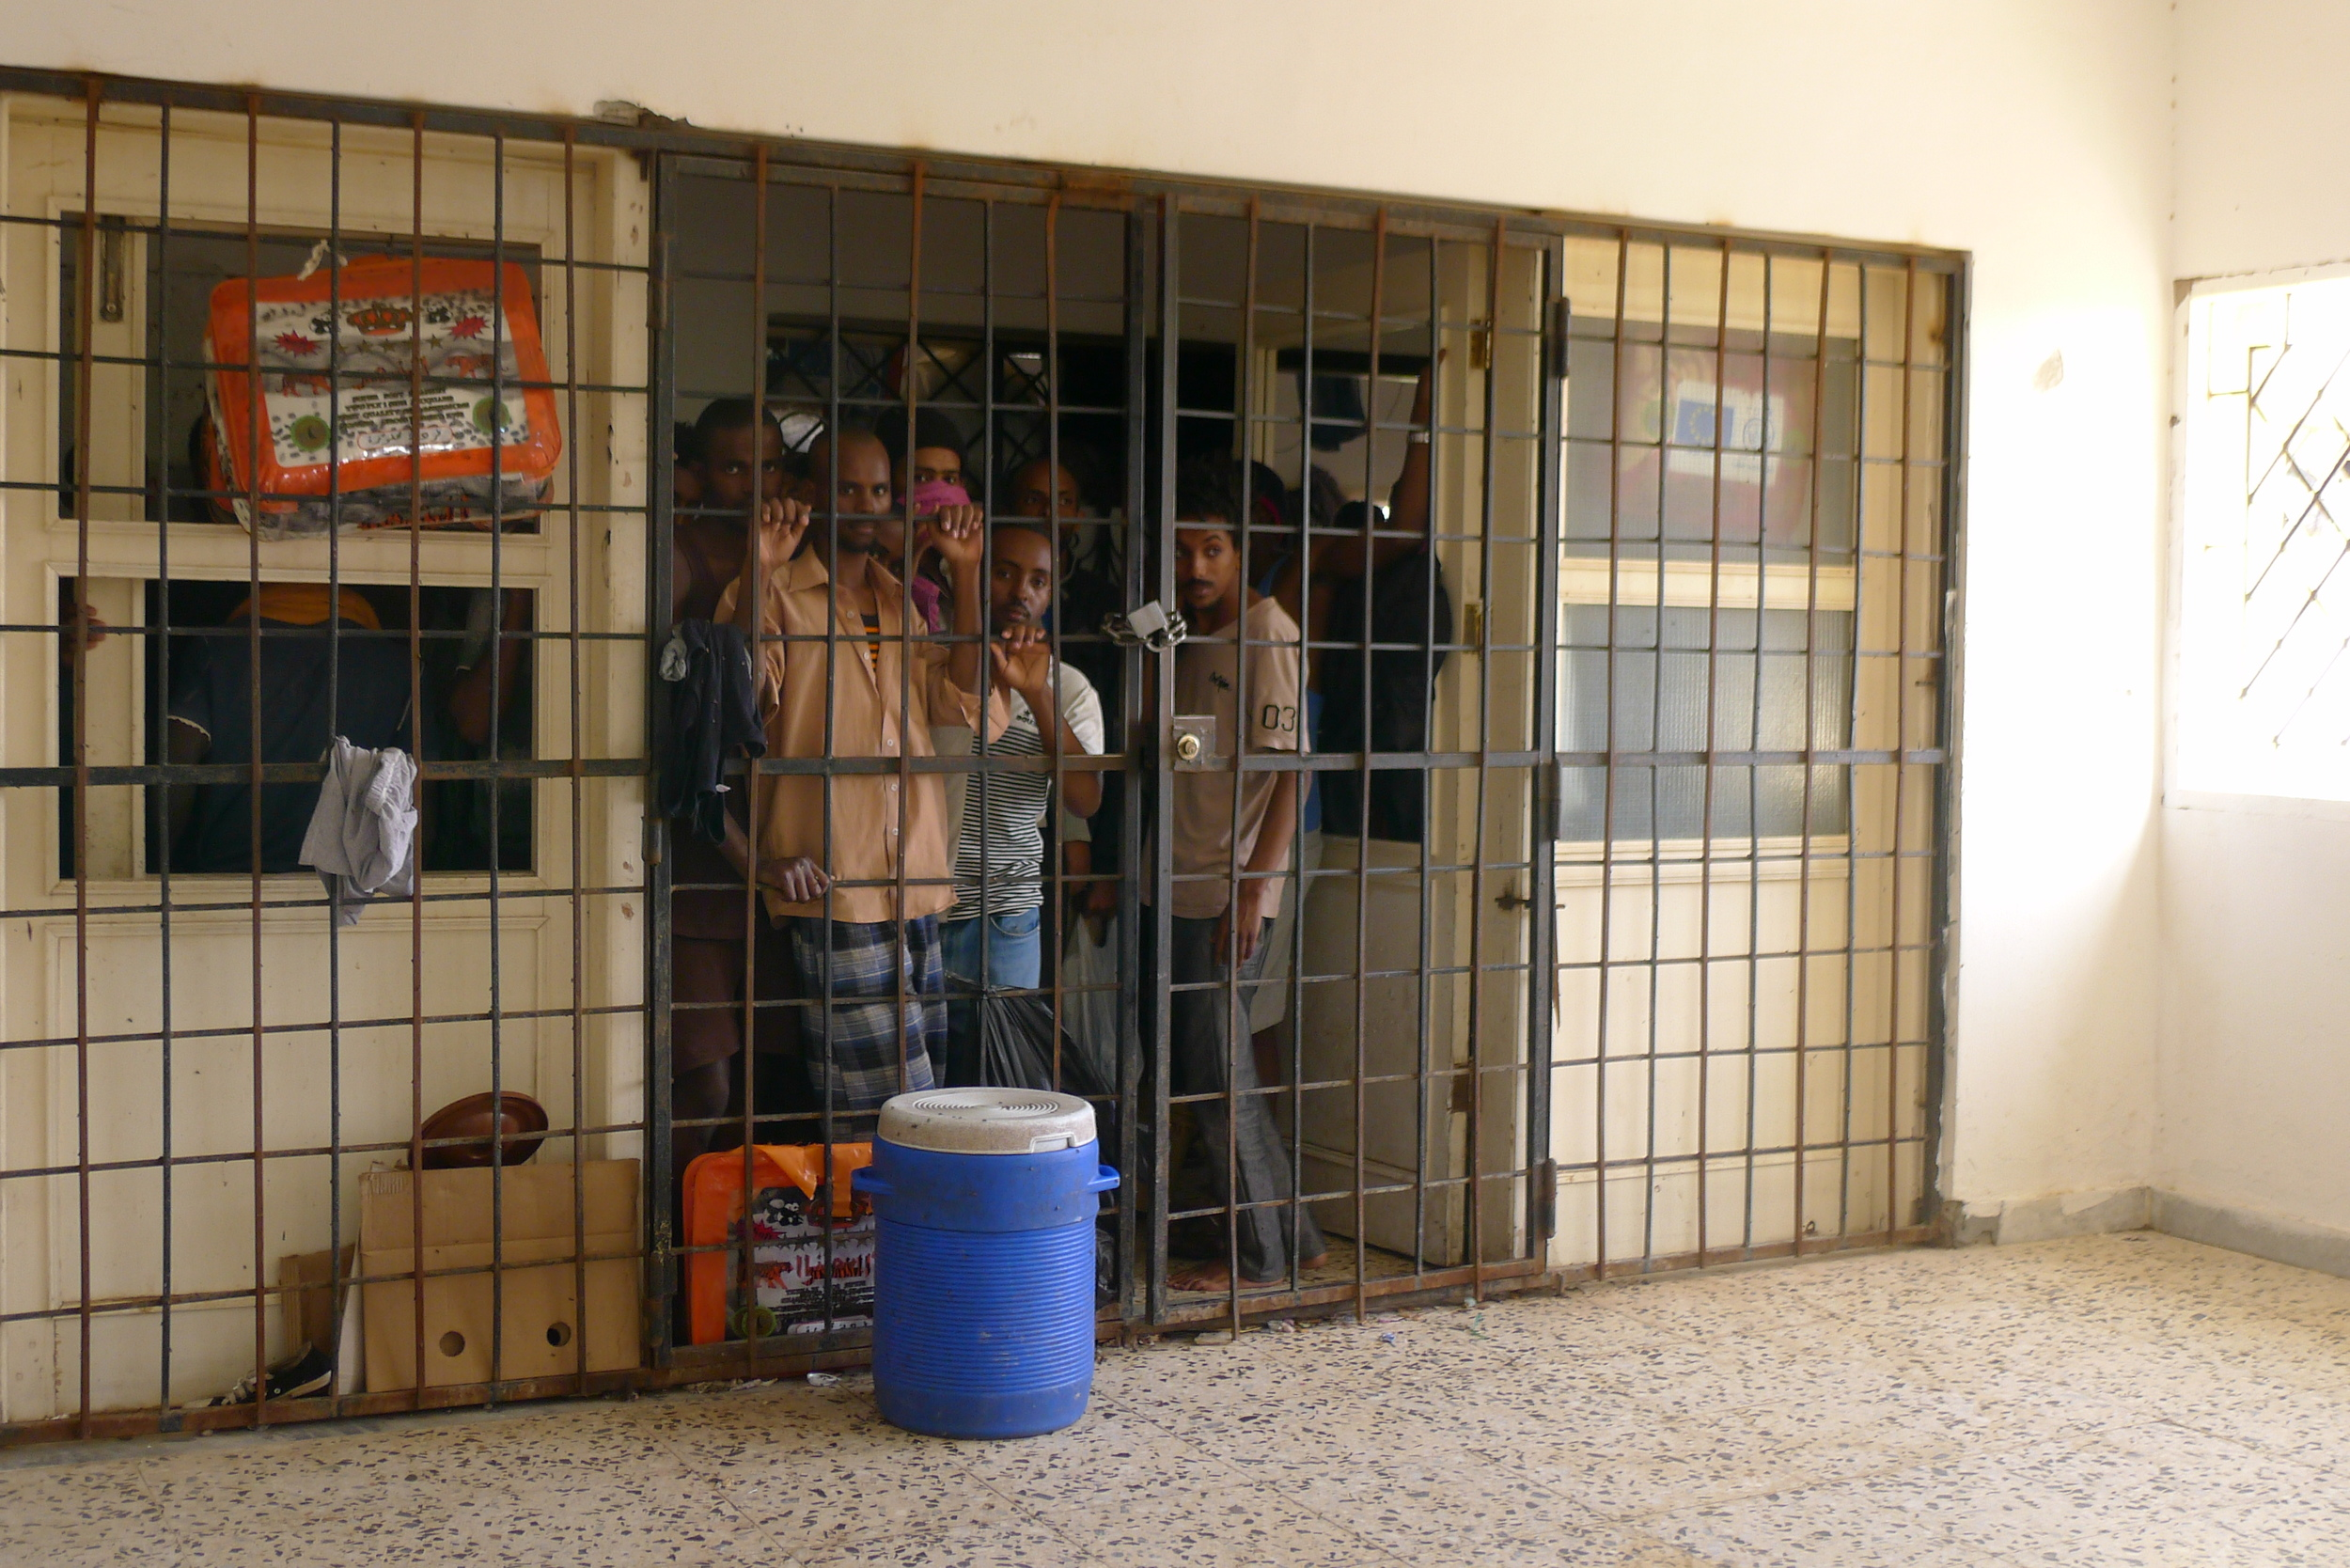 Migrants cluster behind the entrance to the first floor of the detention centre.